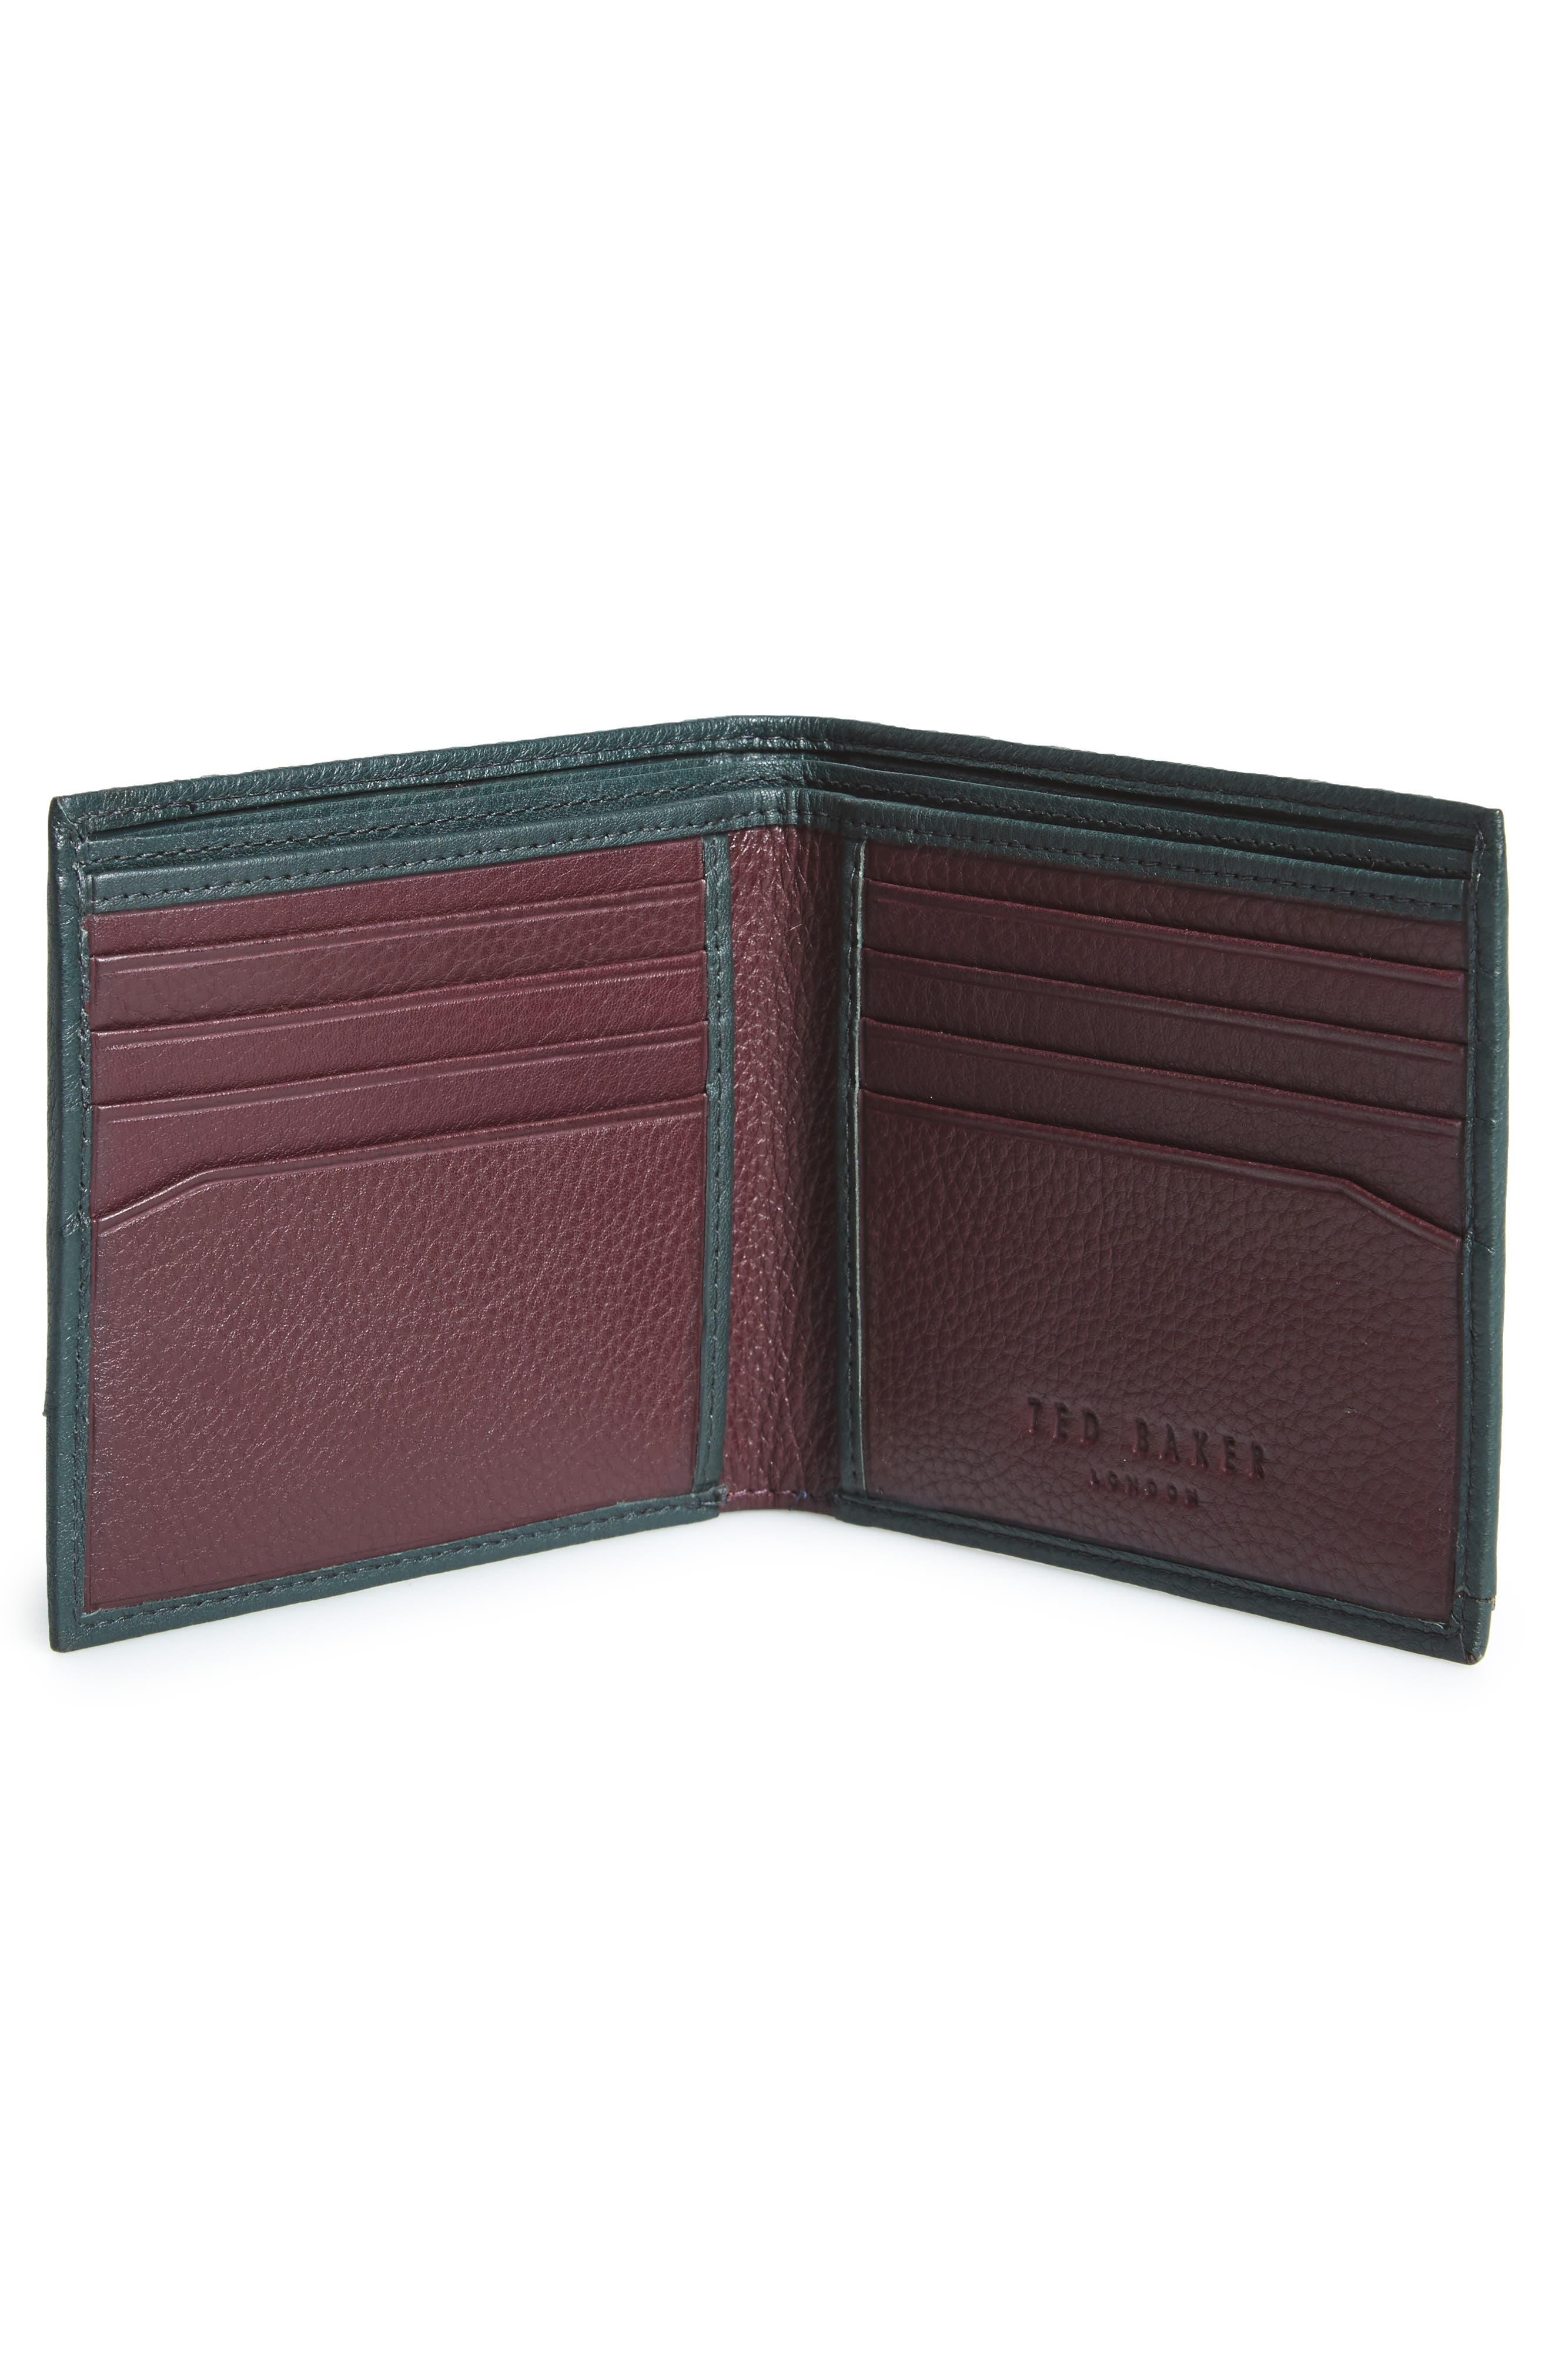 Persia Leather Wallet,                             Alternate thumbnail 2, color,                             Dark Green